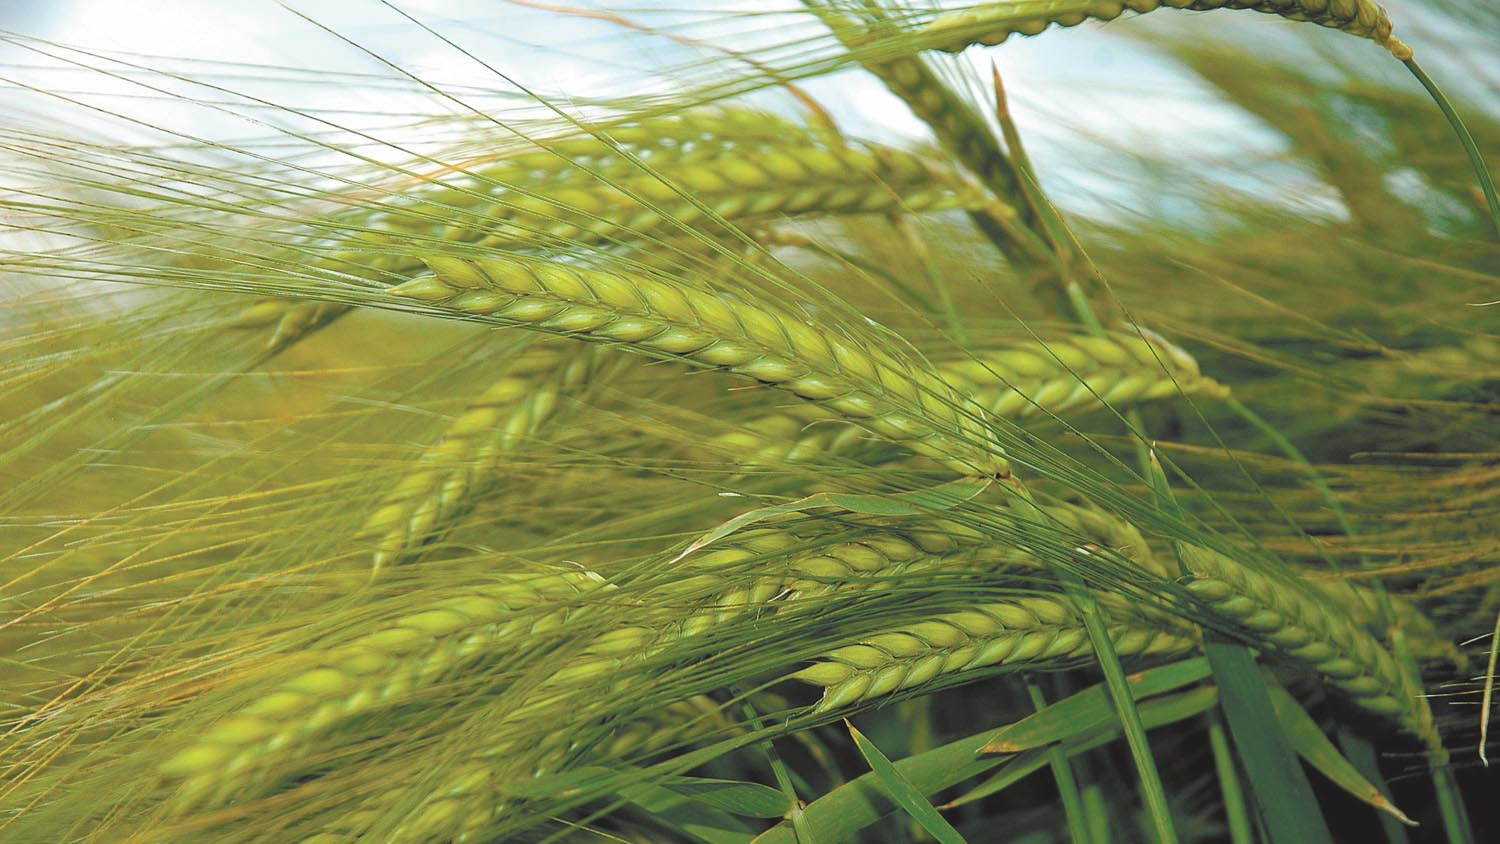 Winter barley 2016 harvest yield under five-year average of 9.30t/ha down to 8.79t/ha